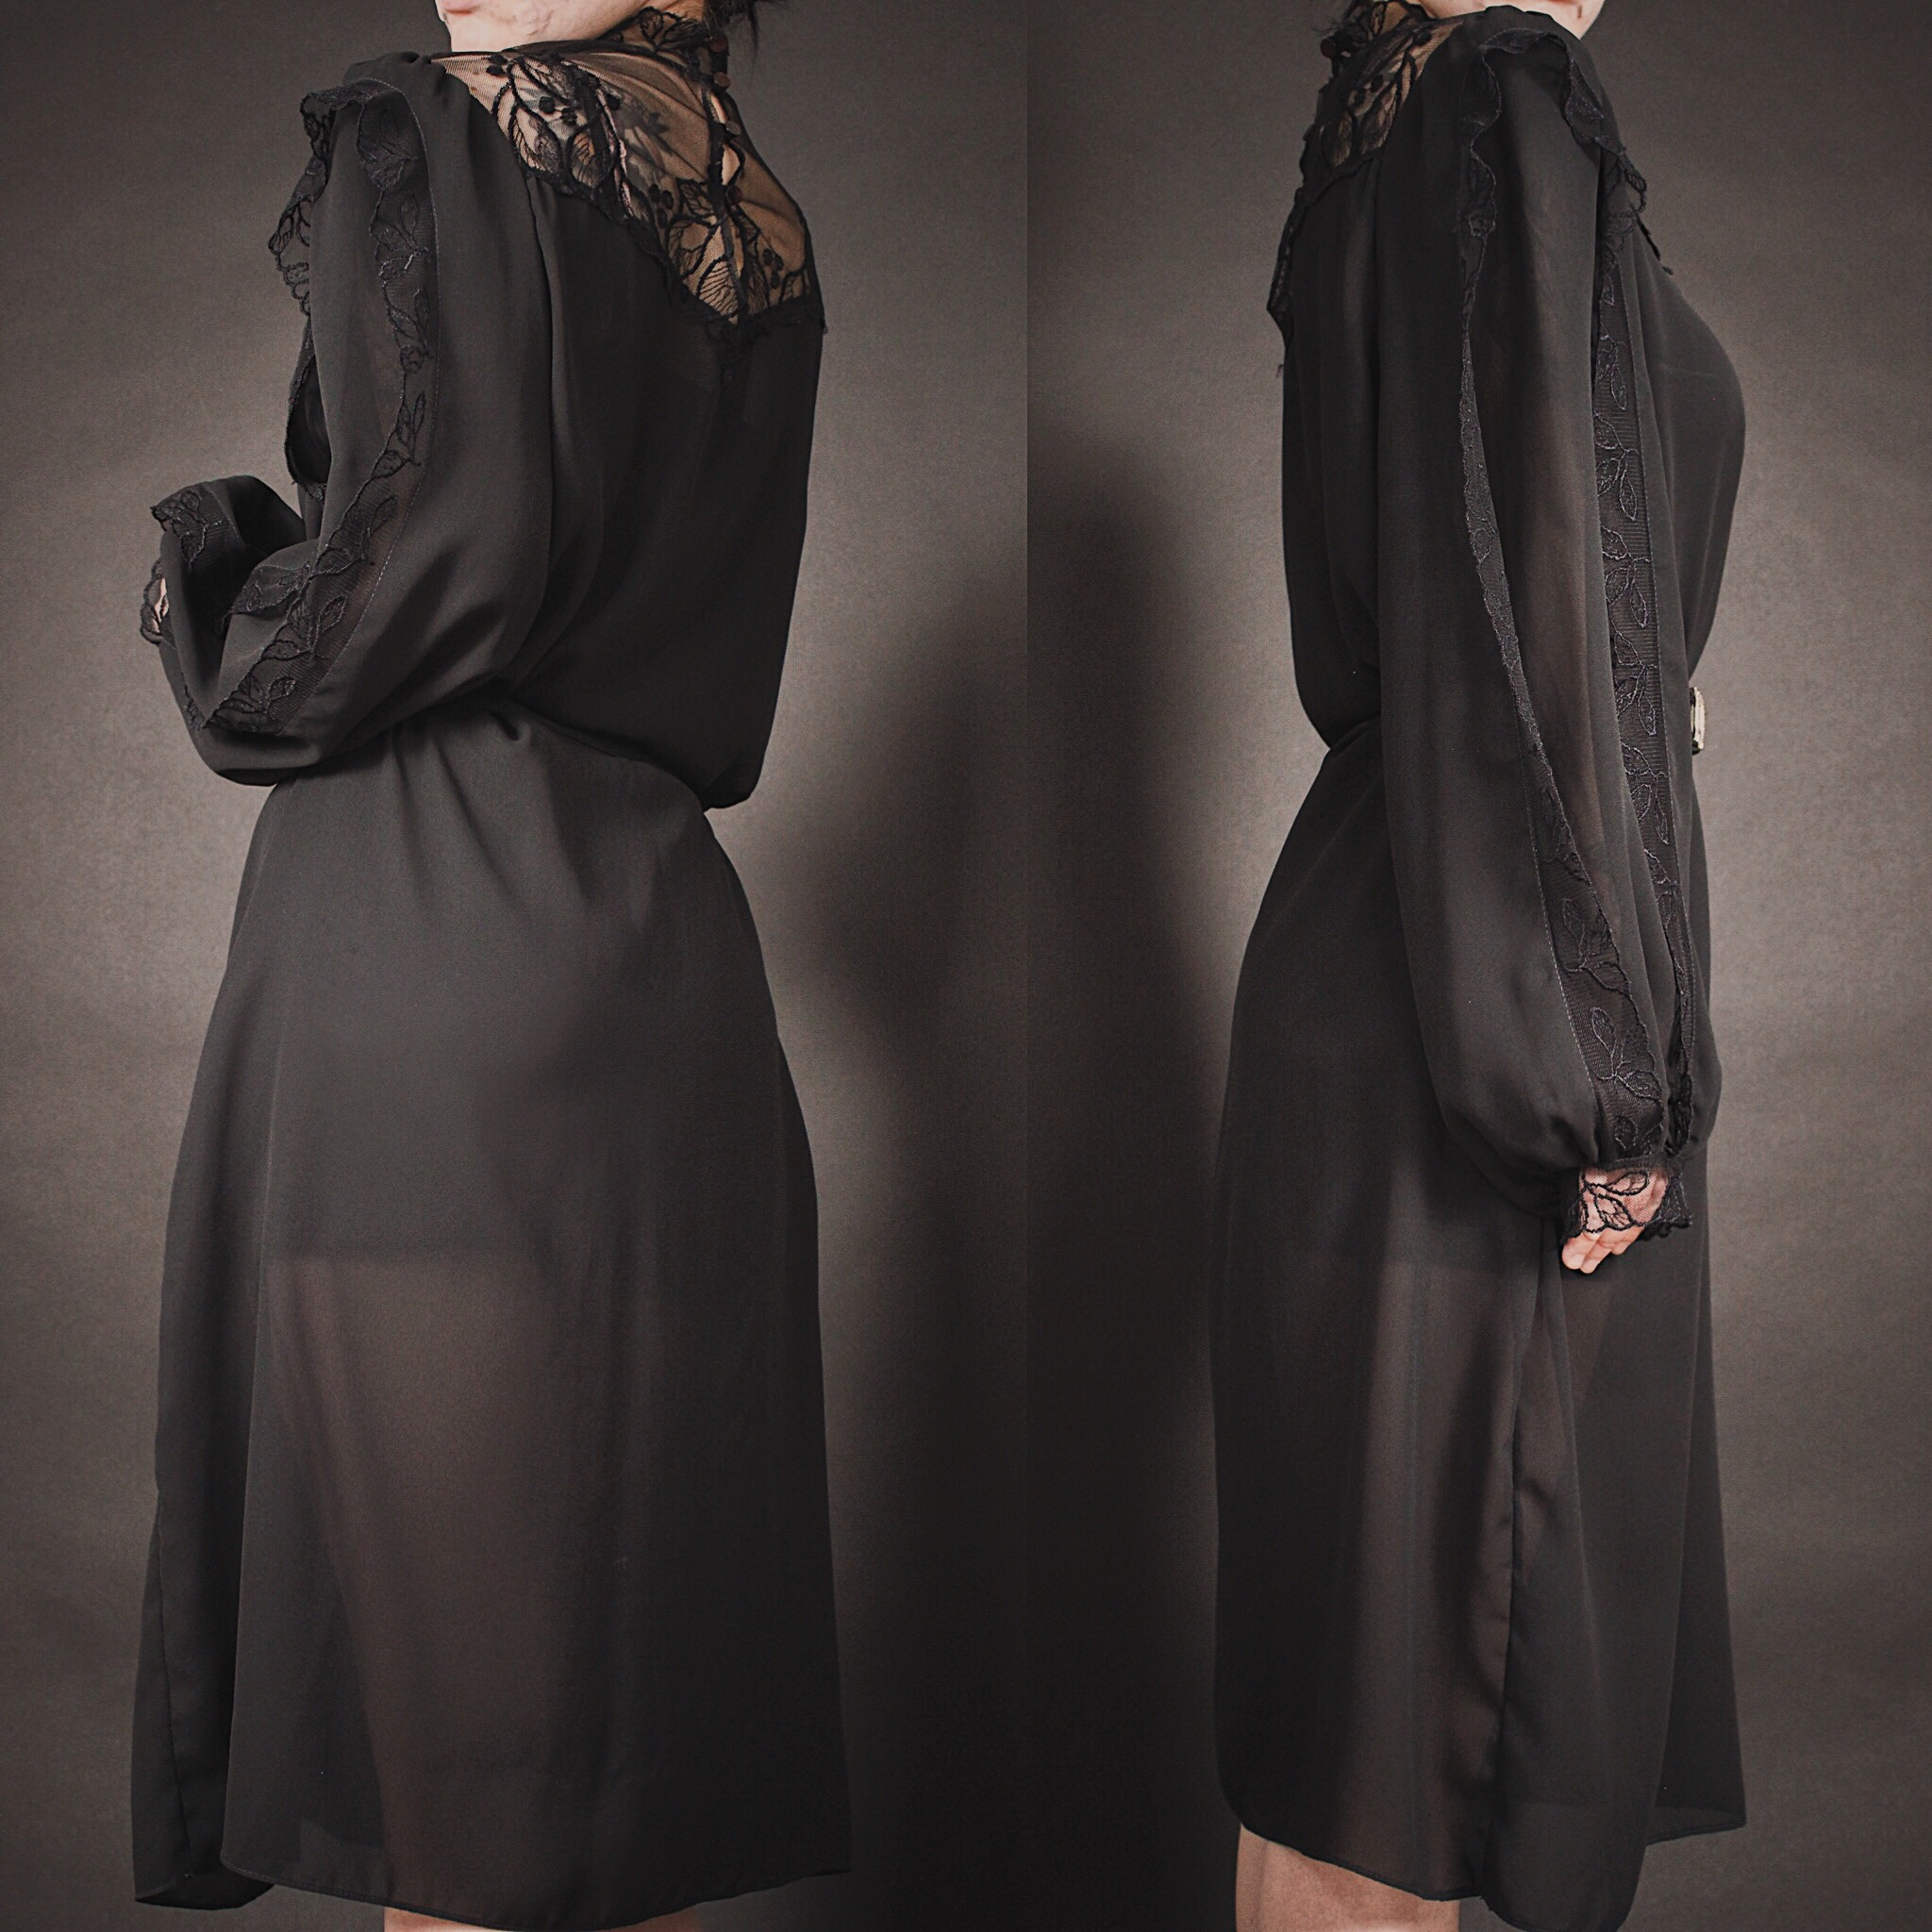 a2487b2a2269 RESERVED FOR MAXX - Vintage 80s Black Lace Victorian Inspired Dress -  Thumbnail ...